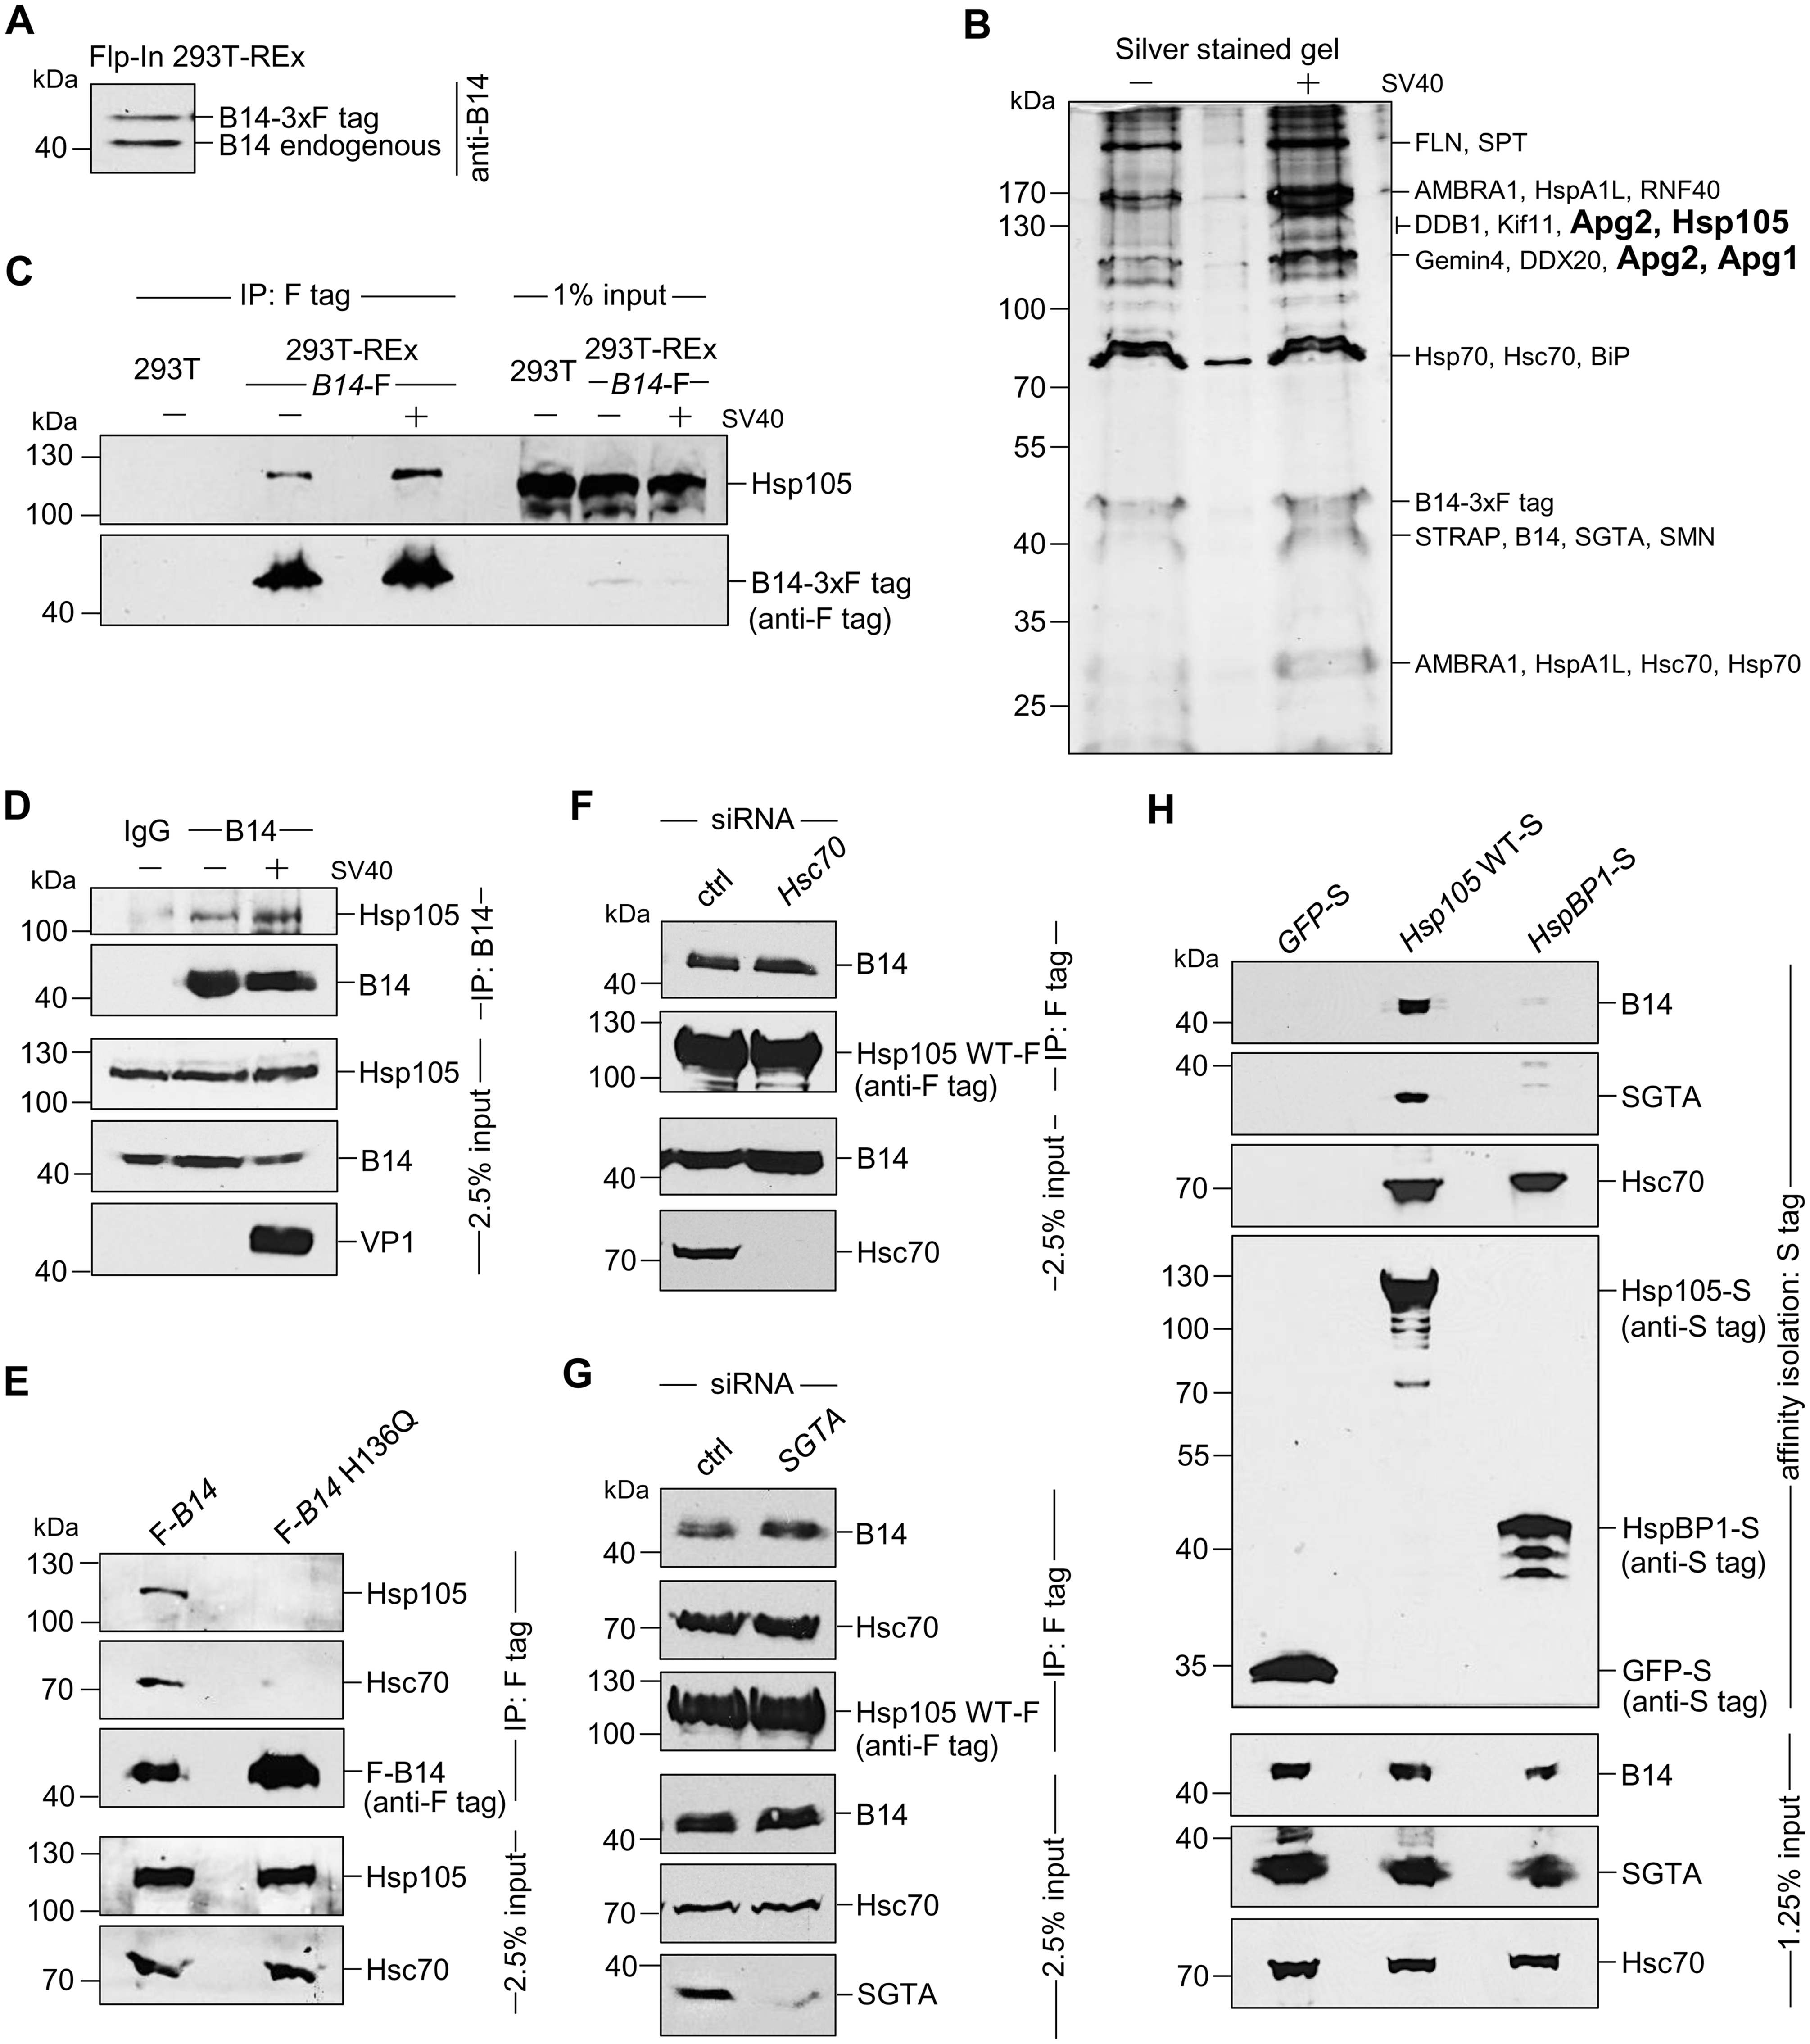 The cytosolic Hsp105 interacts with the ER membrane J-protein B14